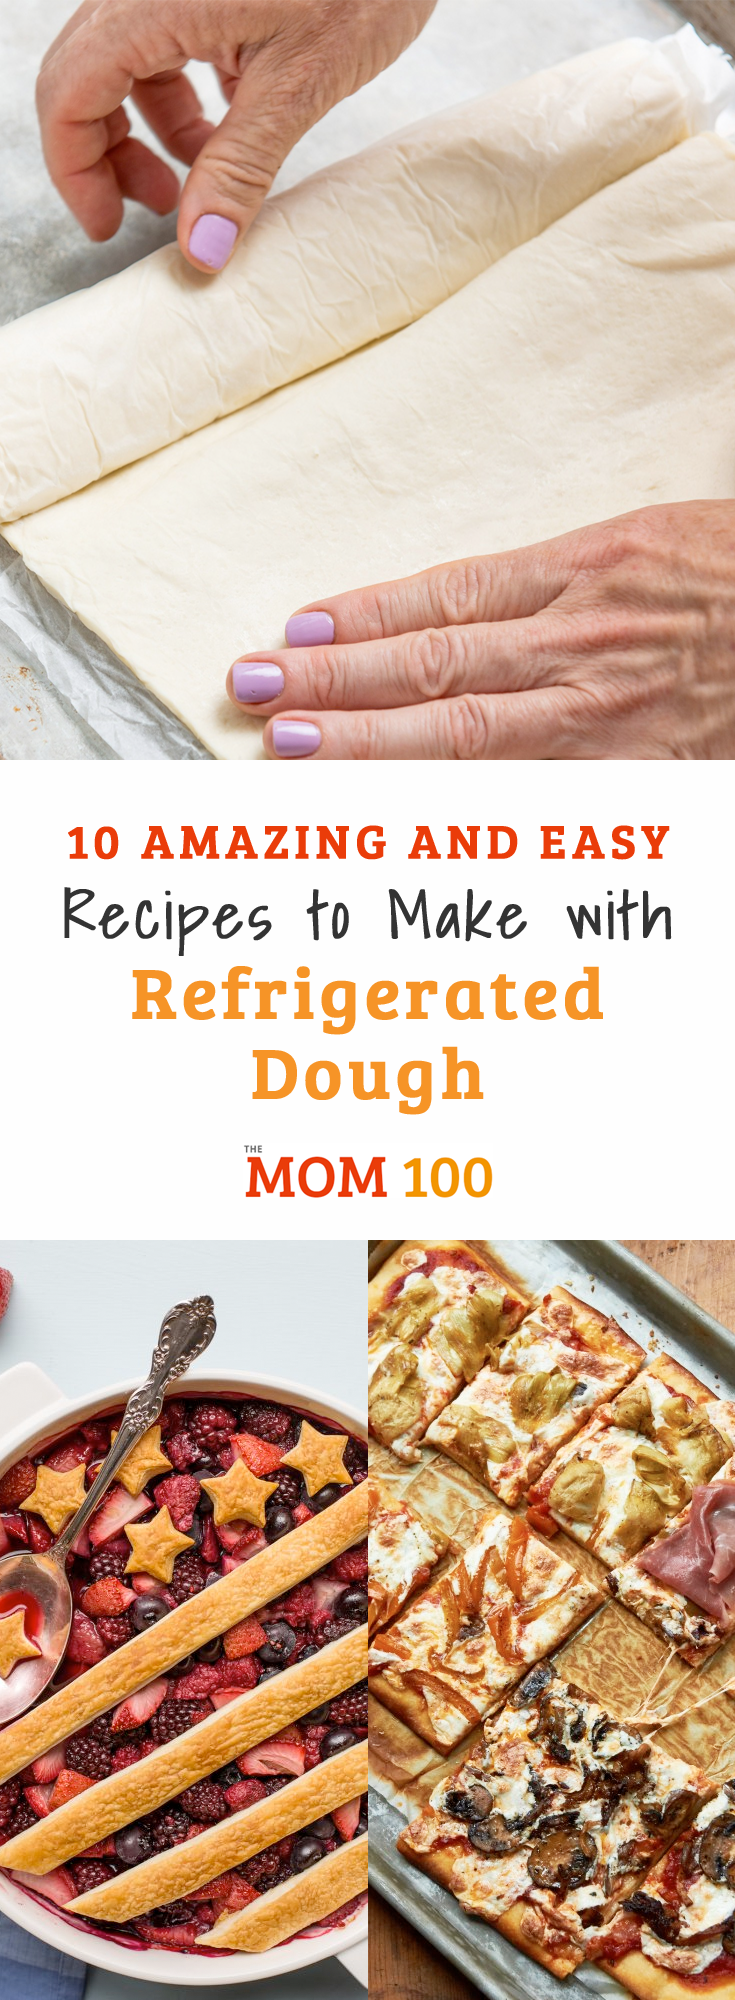 10 Amazing and Easy Recipes to Make with Refrigerated Dough: Biscuit dough, pizza dough, puff pastry...10 things you can make with these great shortcut doughs.